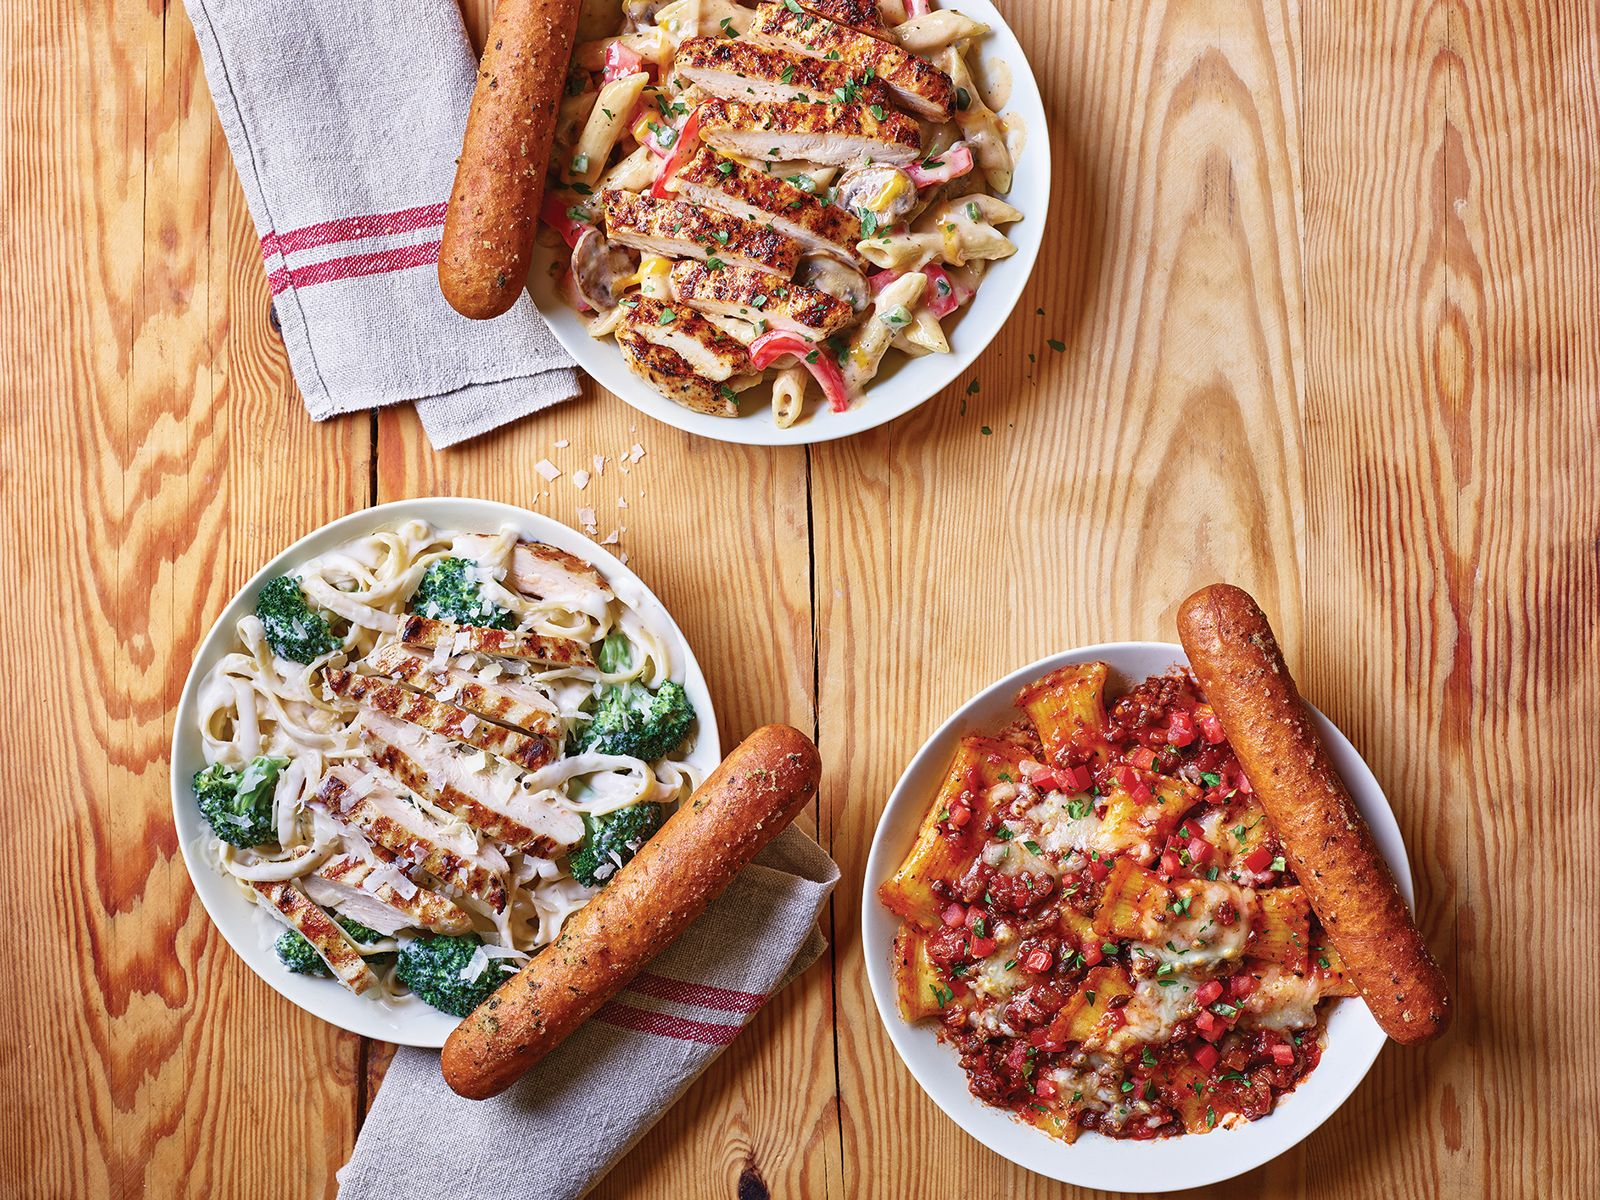 Run, Don't Walk, to the Nearest Applebee's for NEW Neighborhood Pastas and Signature Breadsticks